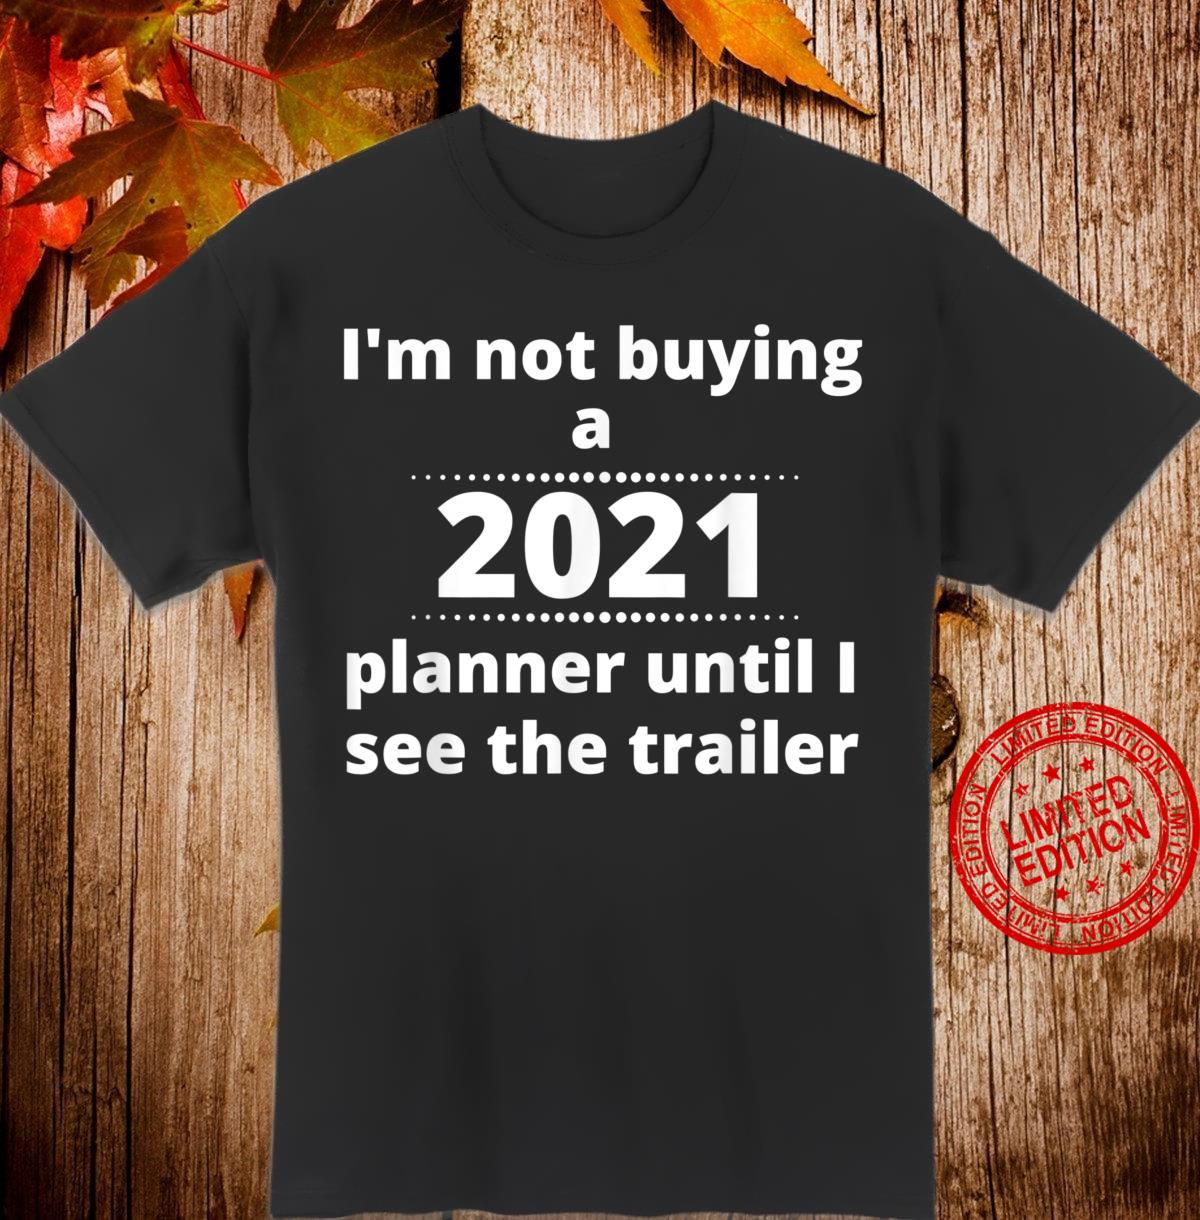 2021 Planner Until I See the Trailer Shirt